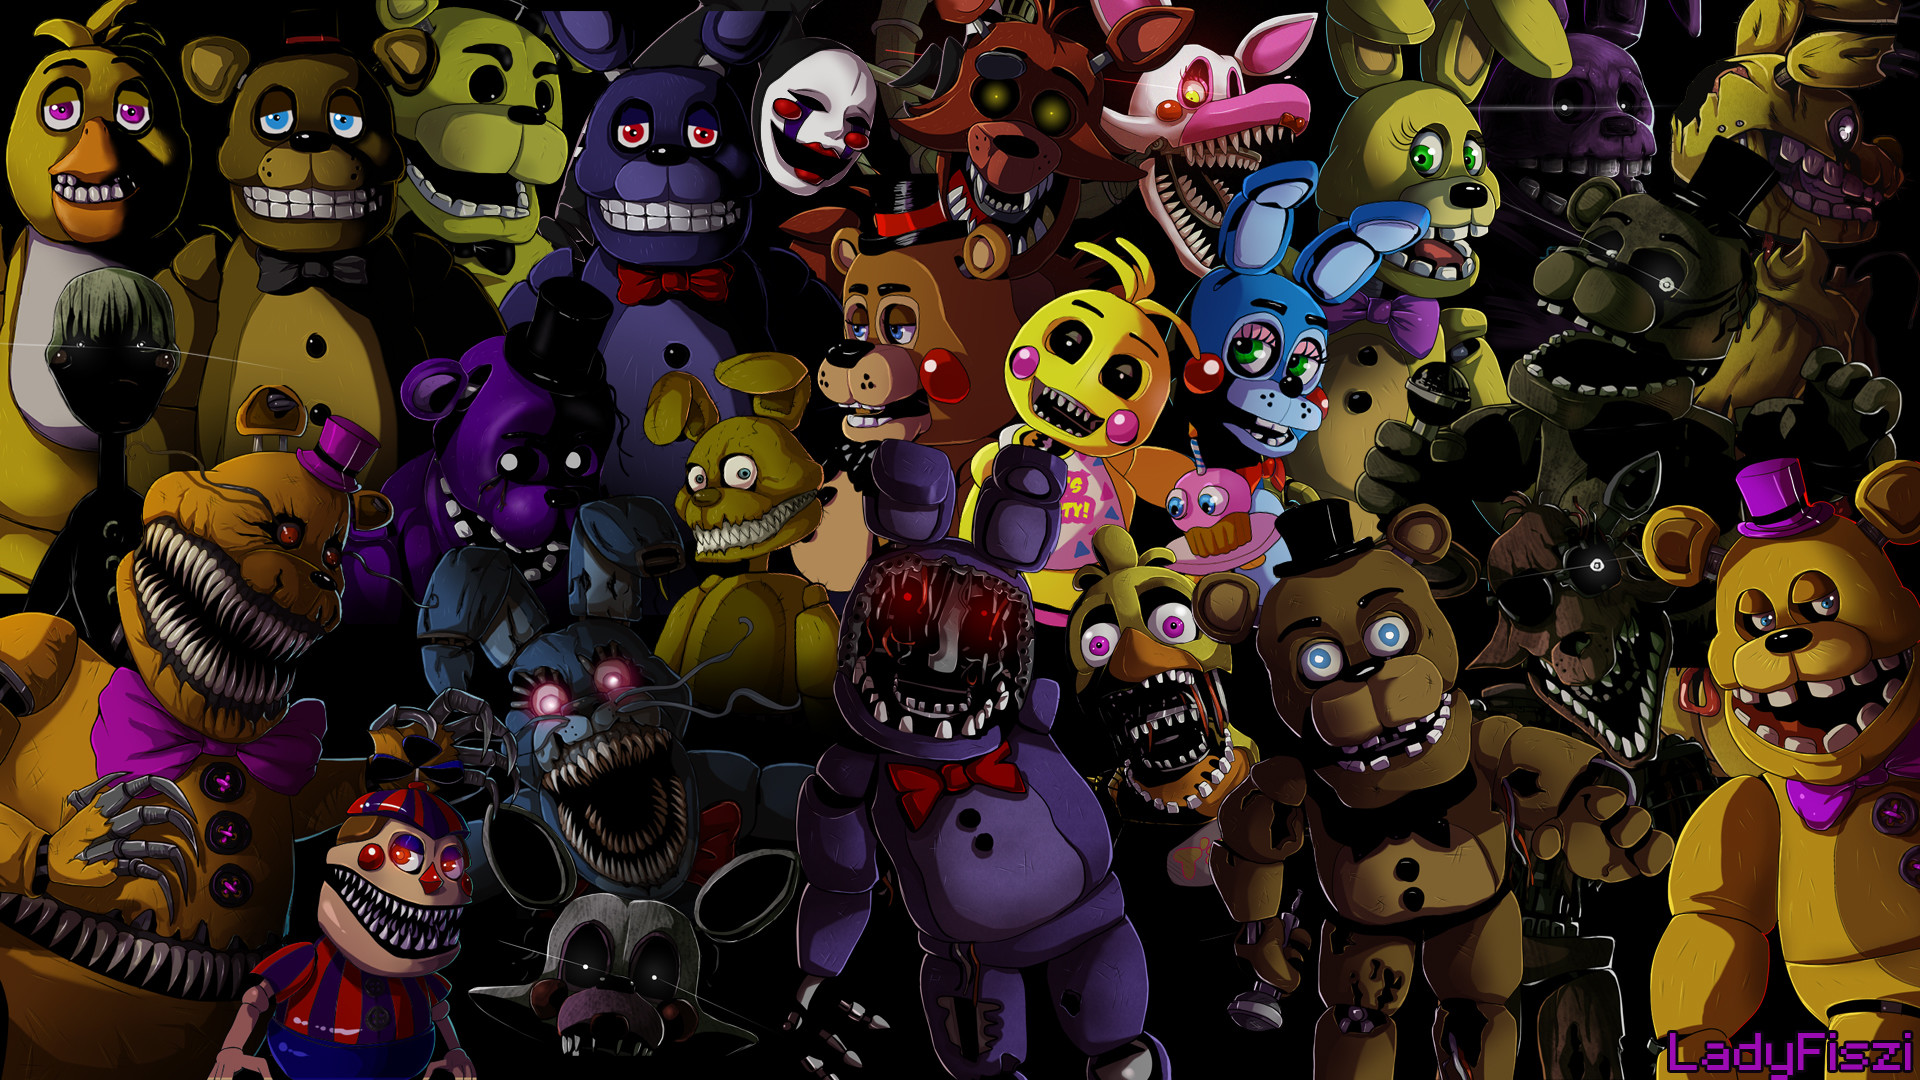 1920x1080 ... Five nights at Freddy's animatronics wallpaper by LadyFiszi